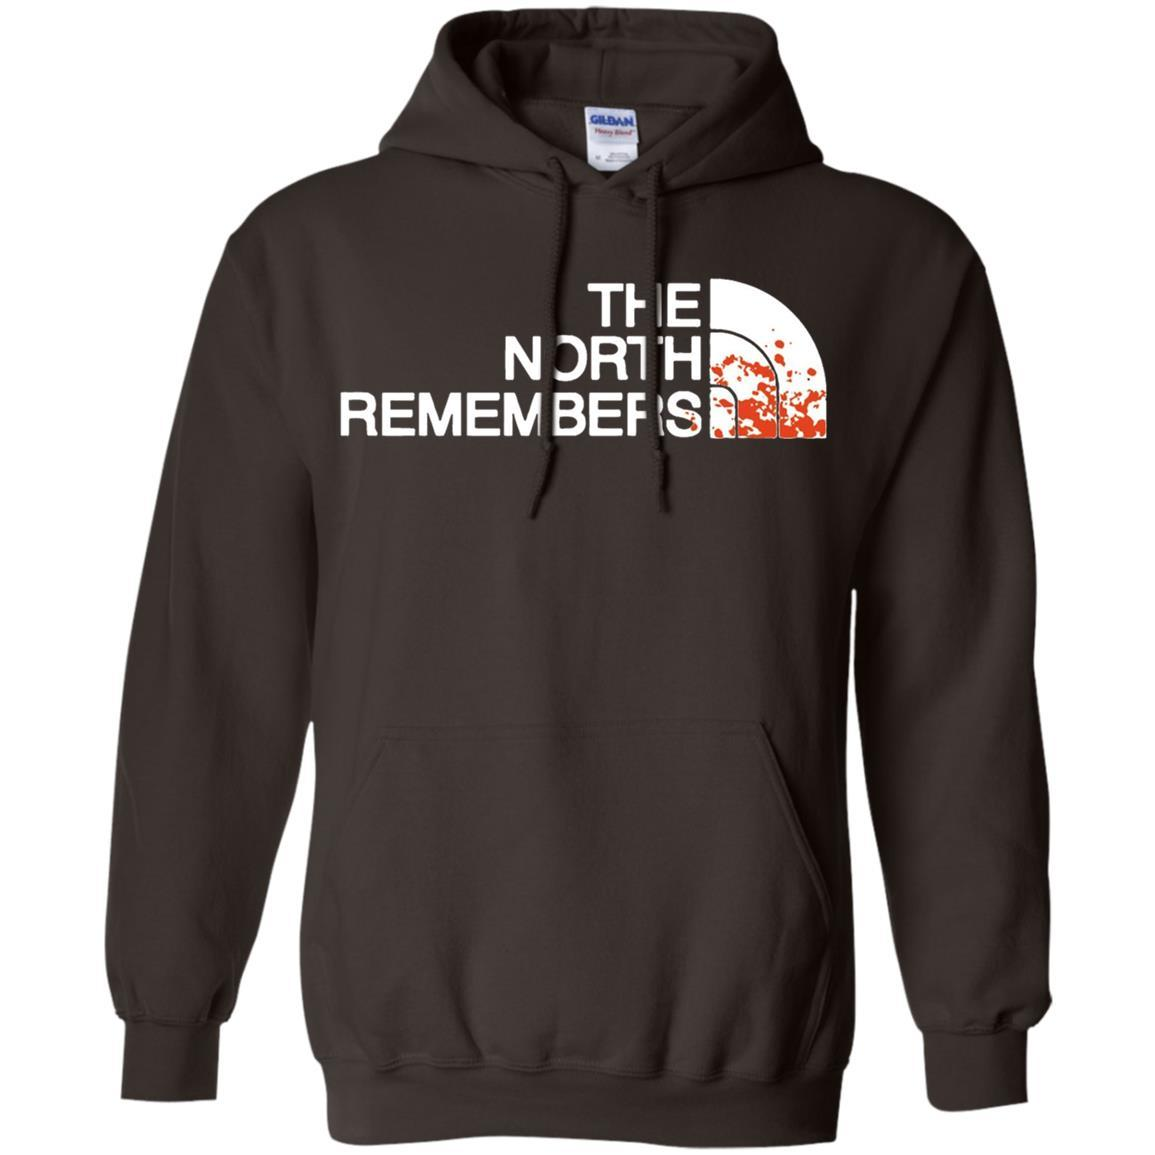 The North Remembers North Face Got - Pullover Hoodie Dark Chocolate / 5XL